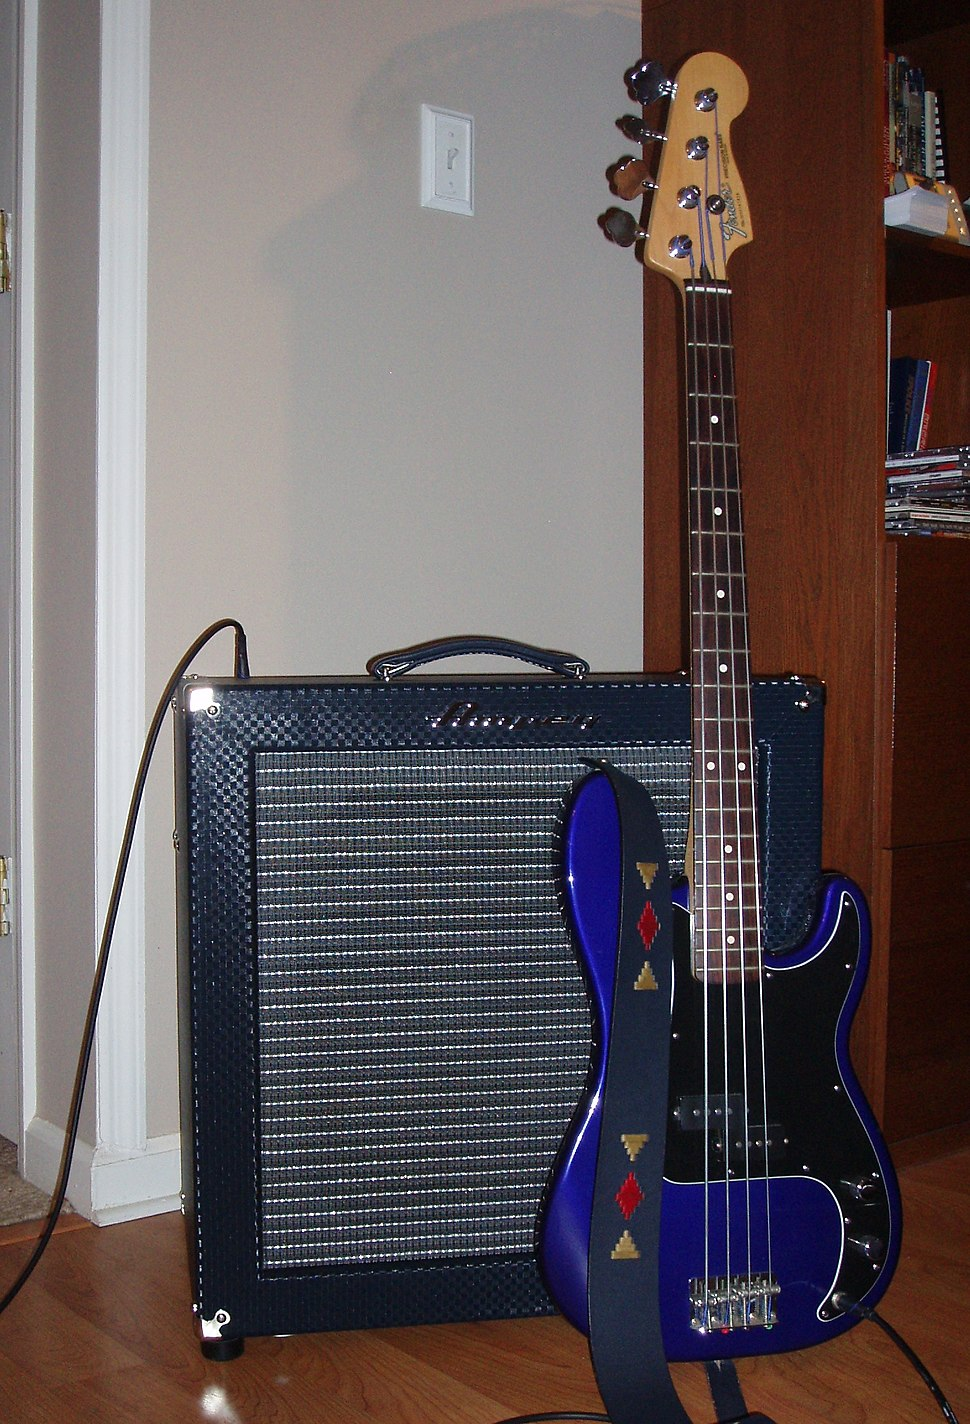 Ampeg B200R %26 Fender Precision Bass (after make over)